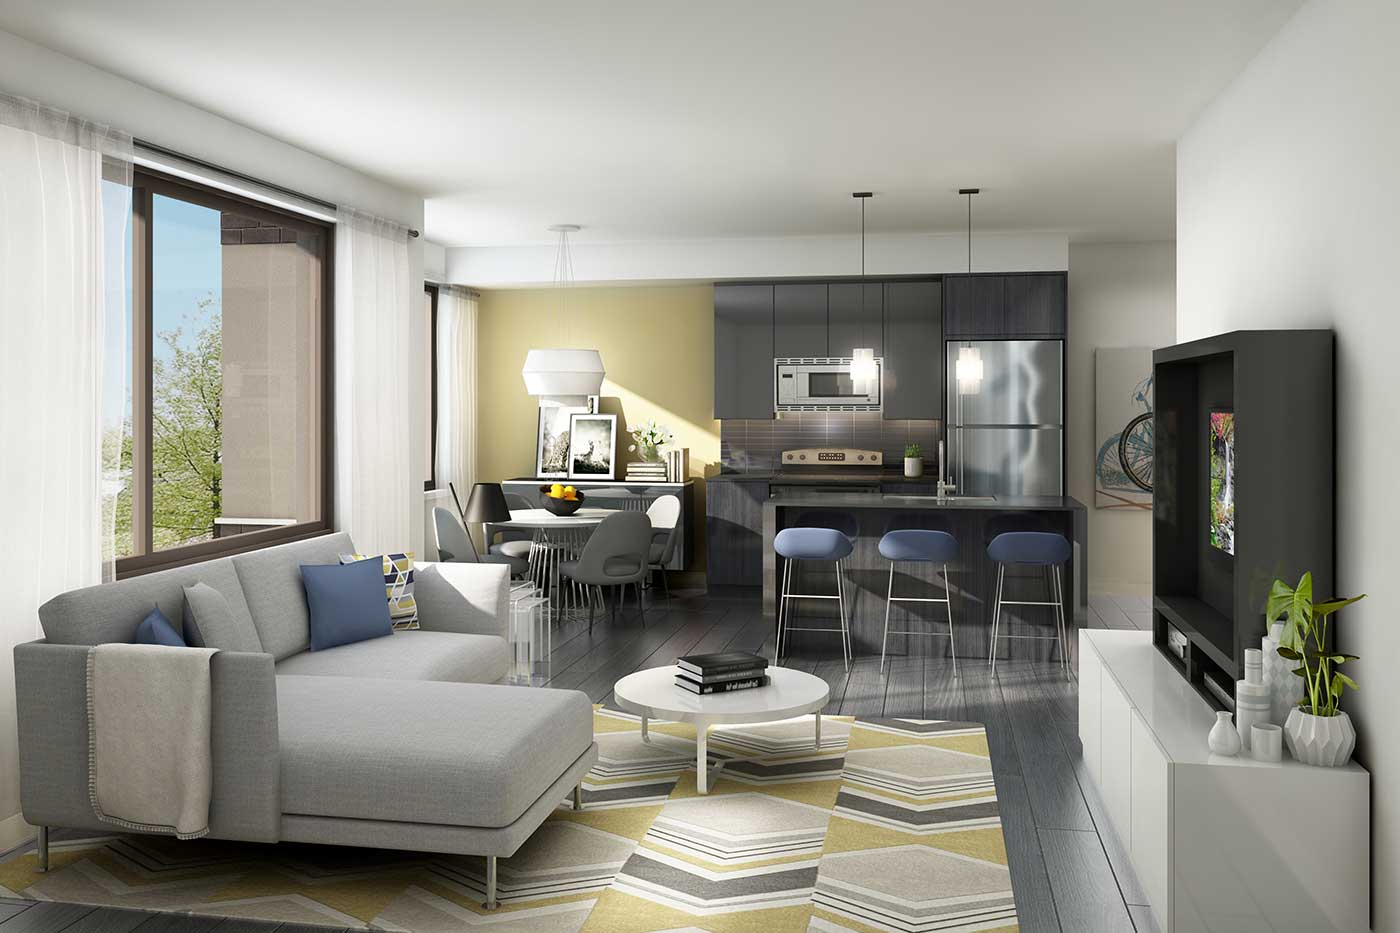 burlington-townhomes-station-west-condos-new-york-collection-flooring-features.jpg